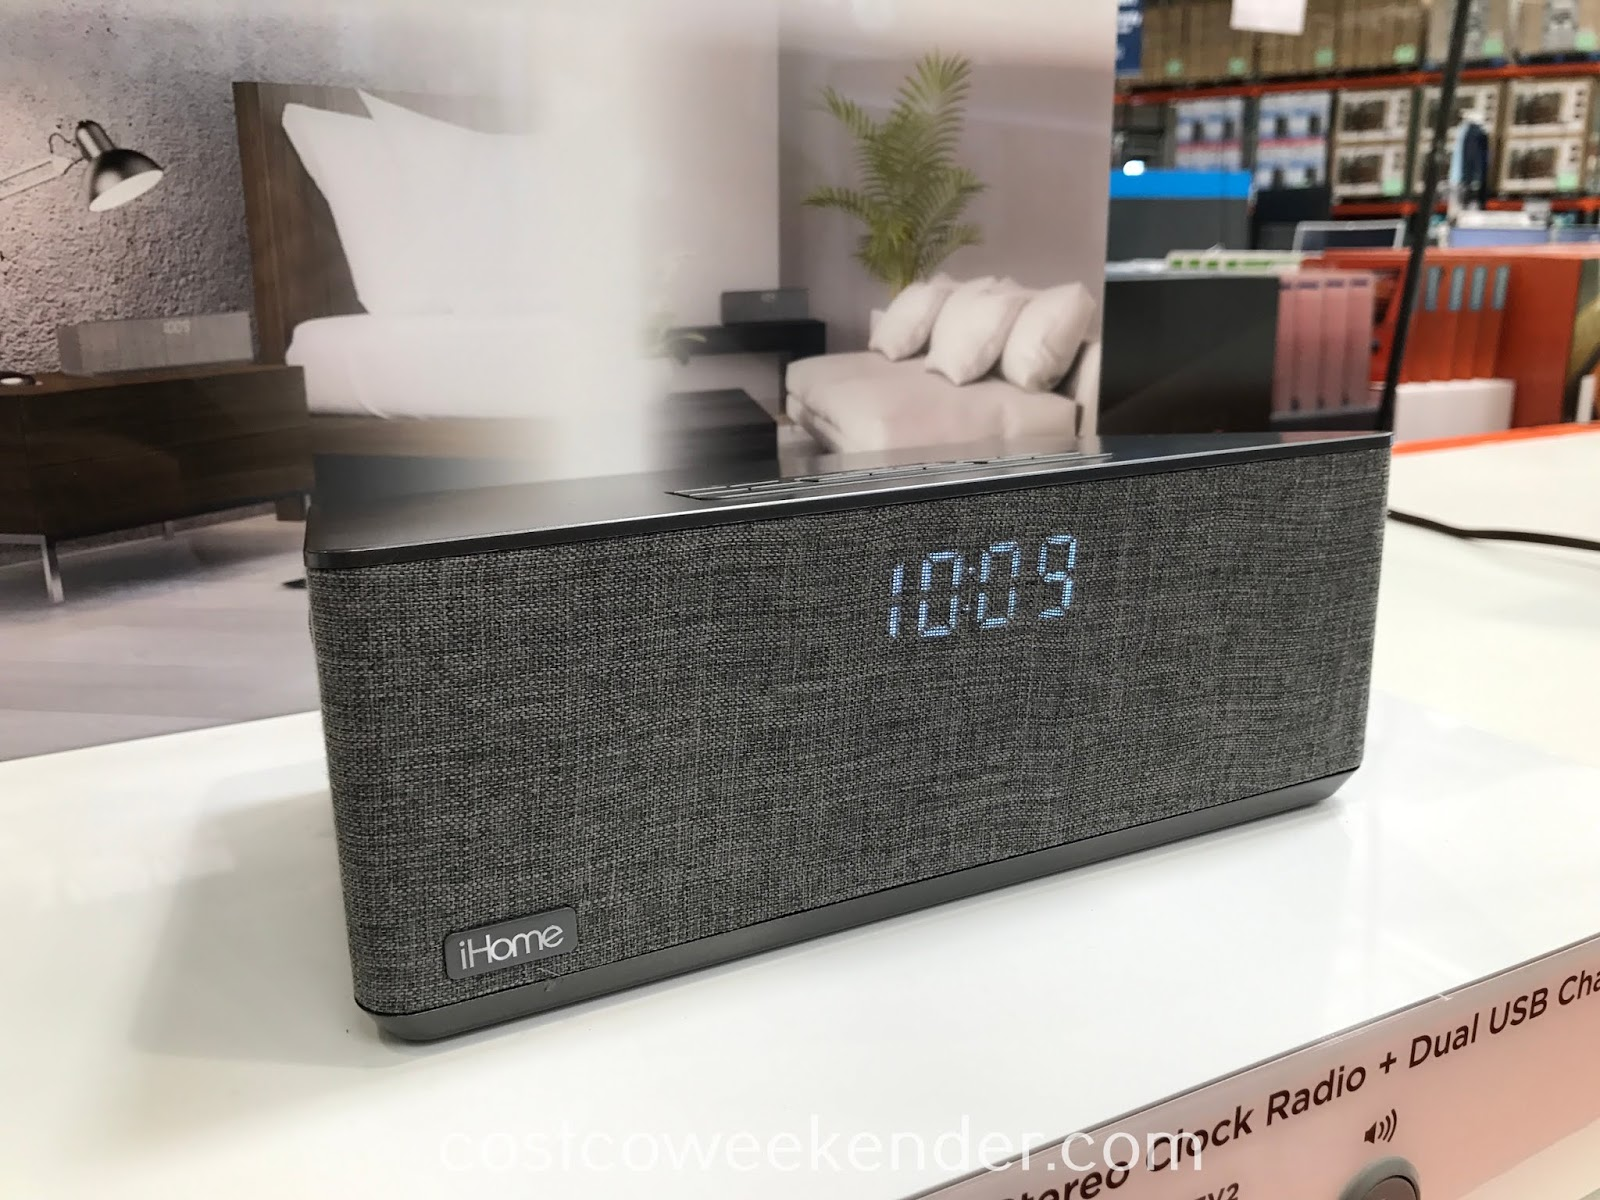 Wake up in the morning to music from your smartphone with the iHome Dual Alarm Stereo Clock Radio